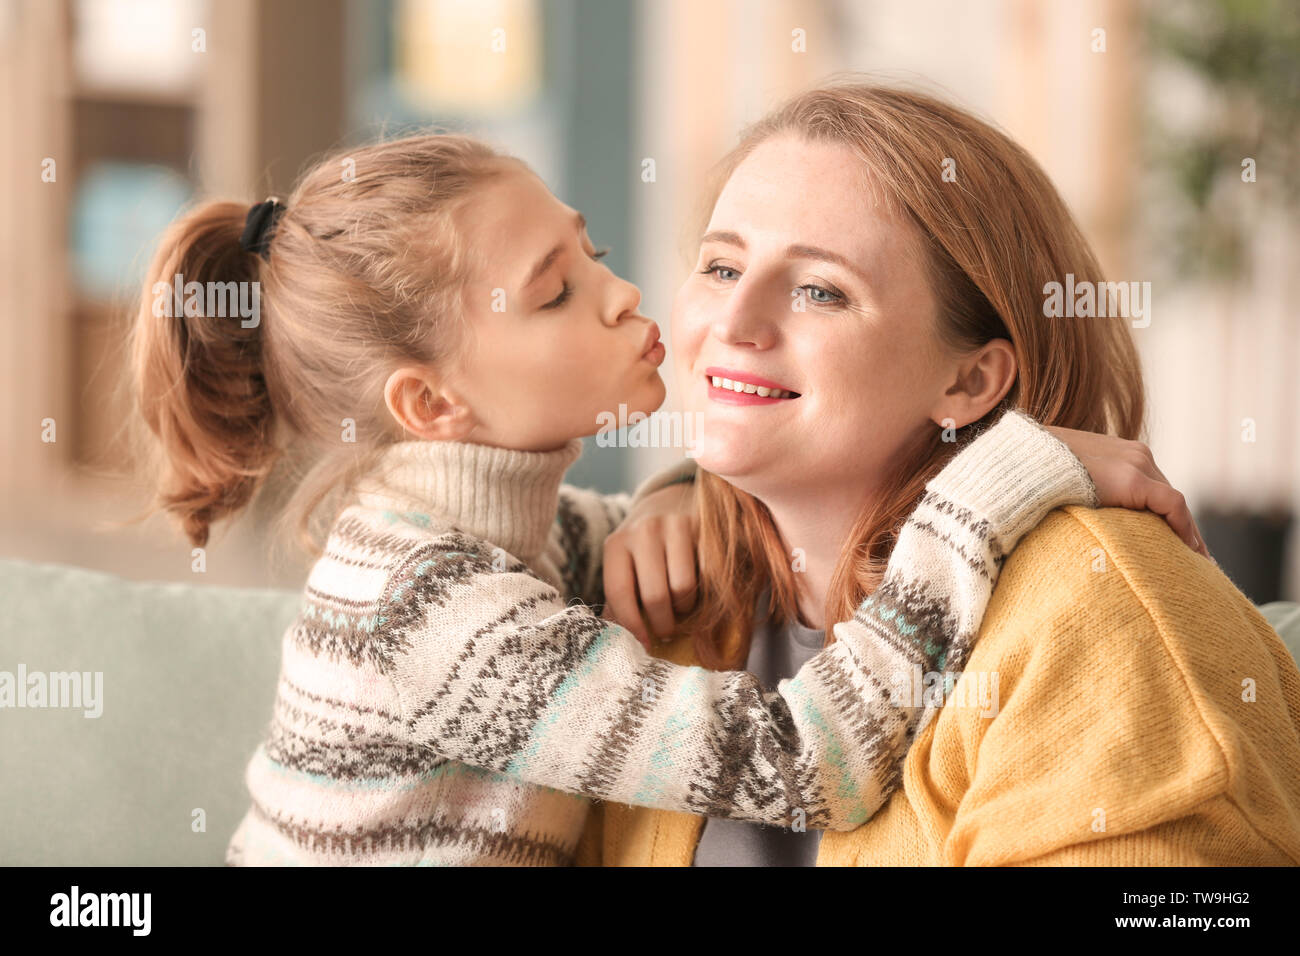 Cute little girl kissing her mother at home - Stock Image